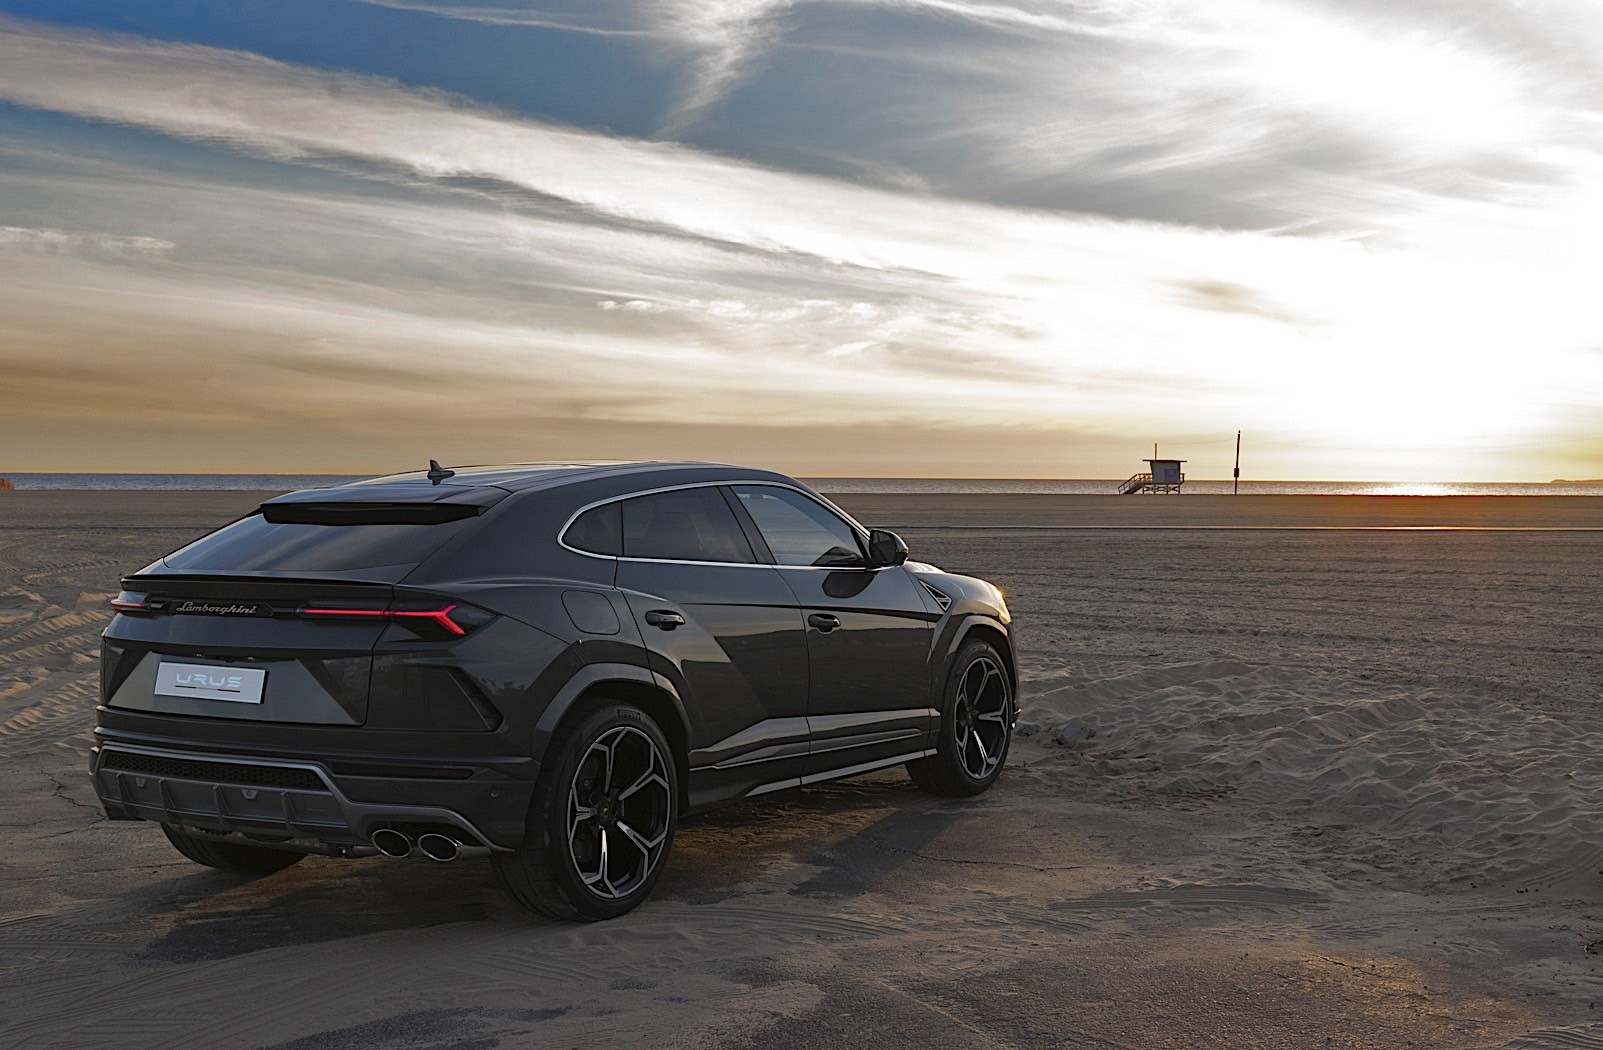 D Eb additionally Lambo together with Lamborghini Urus  pletes World Tour Shows Itself In Cities further Lamborghini Urus X Pickup And Production Model Rendered also Nissan Sentra Manu. on lamborghini car model